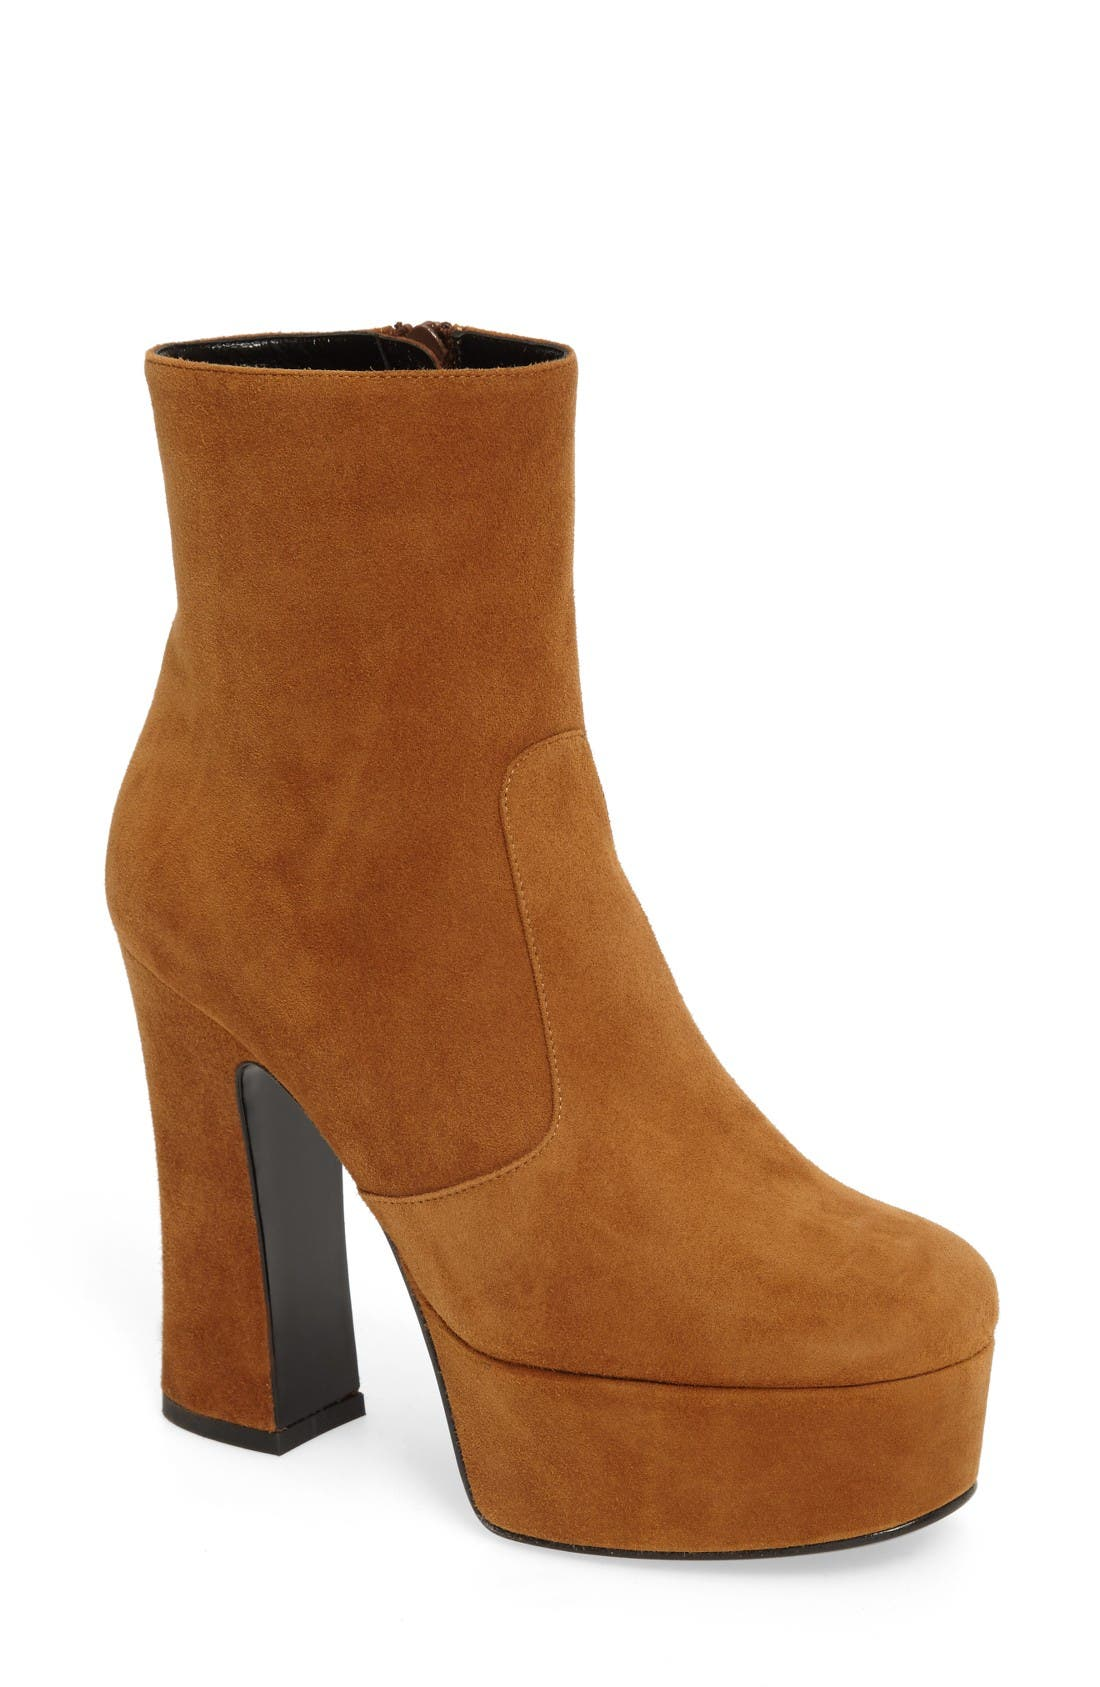 Alternate Image 1 Selected - Saint Laurent Candy Platform Bootie (Women)